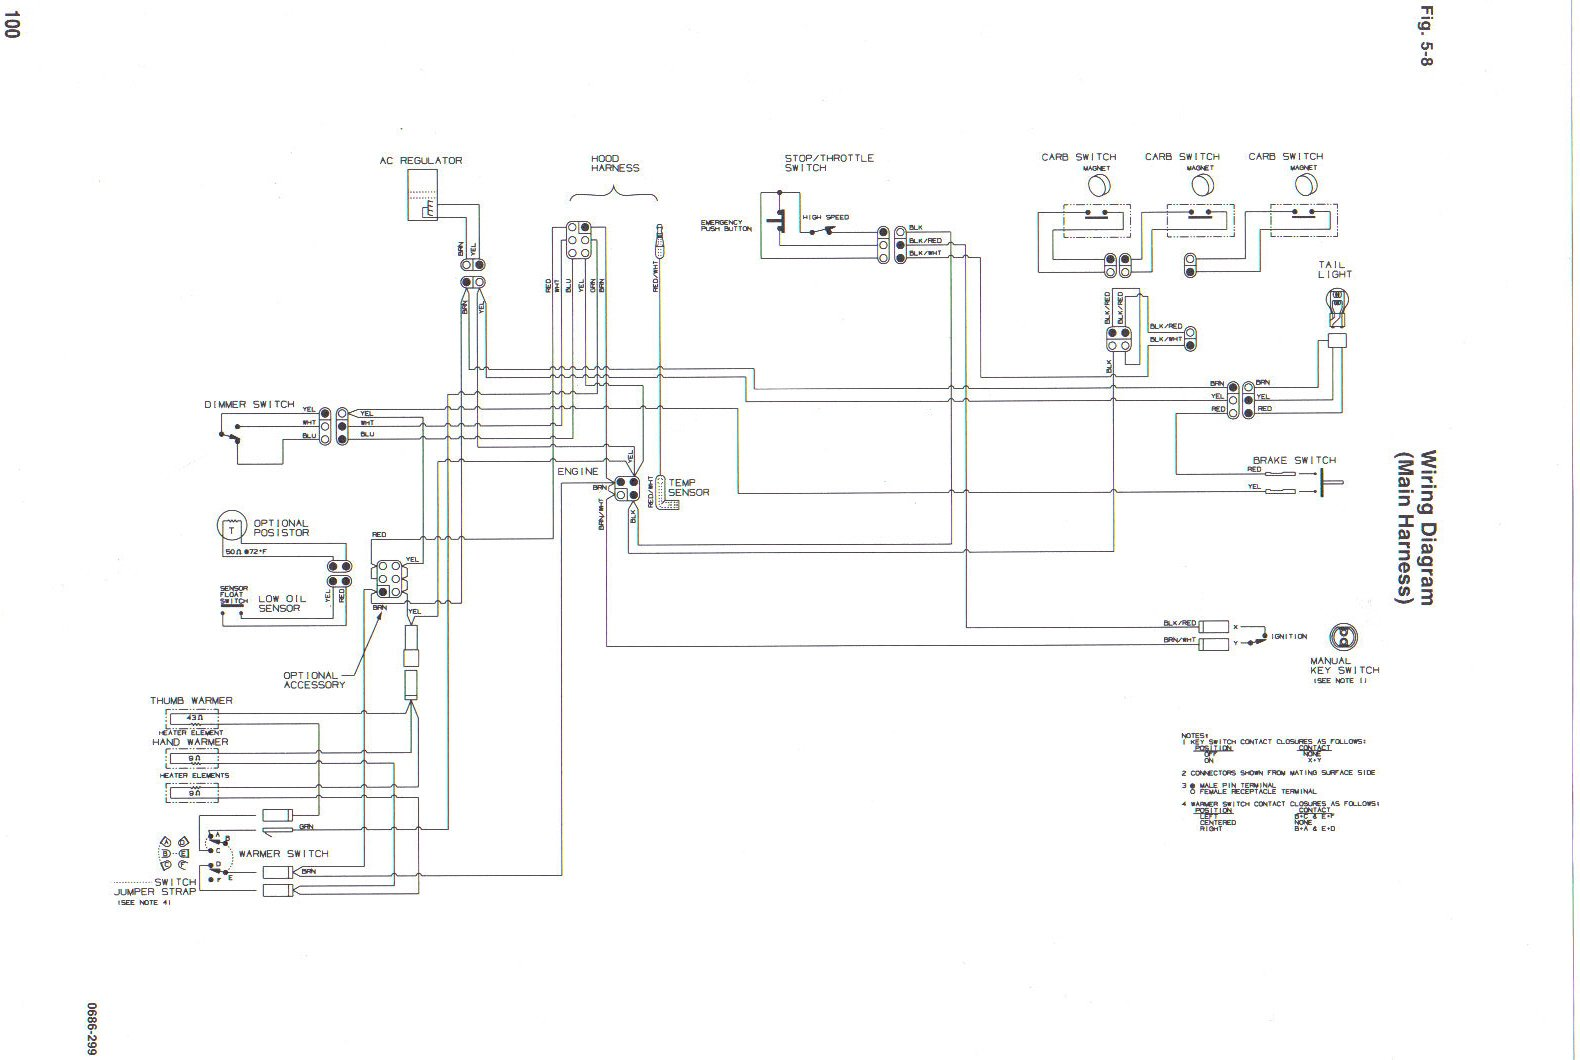 [DIAGRAM] Mg Zr Alternator Wiring Diagram FULL Version HD